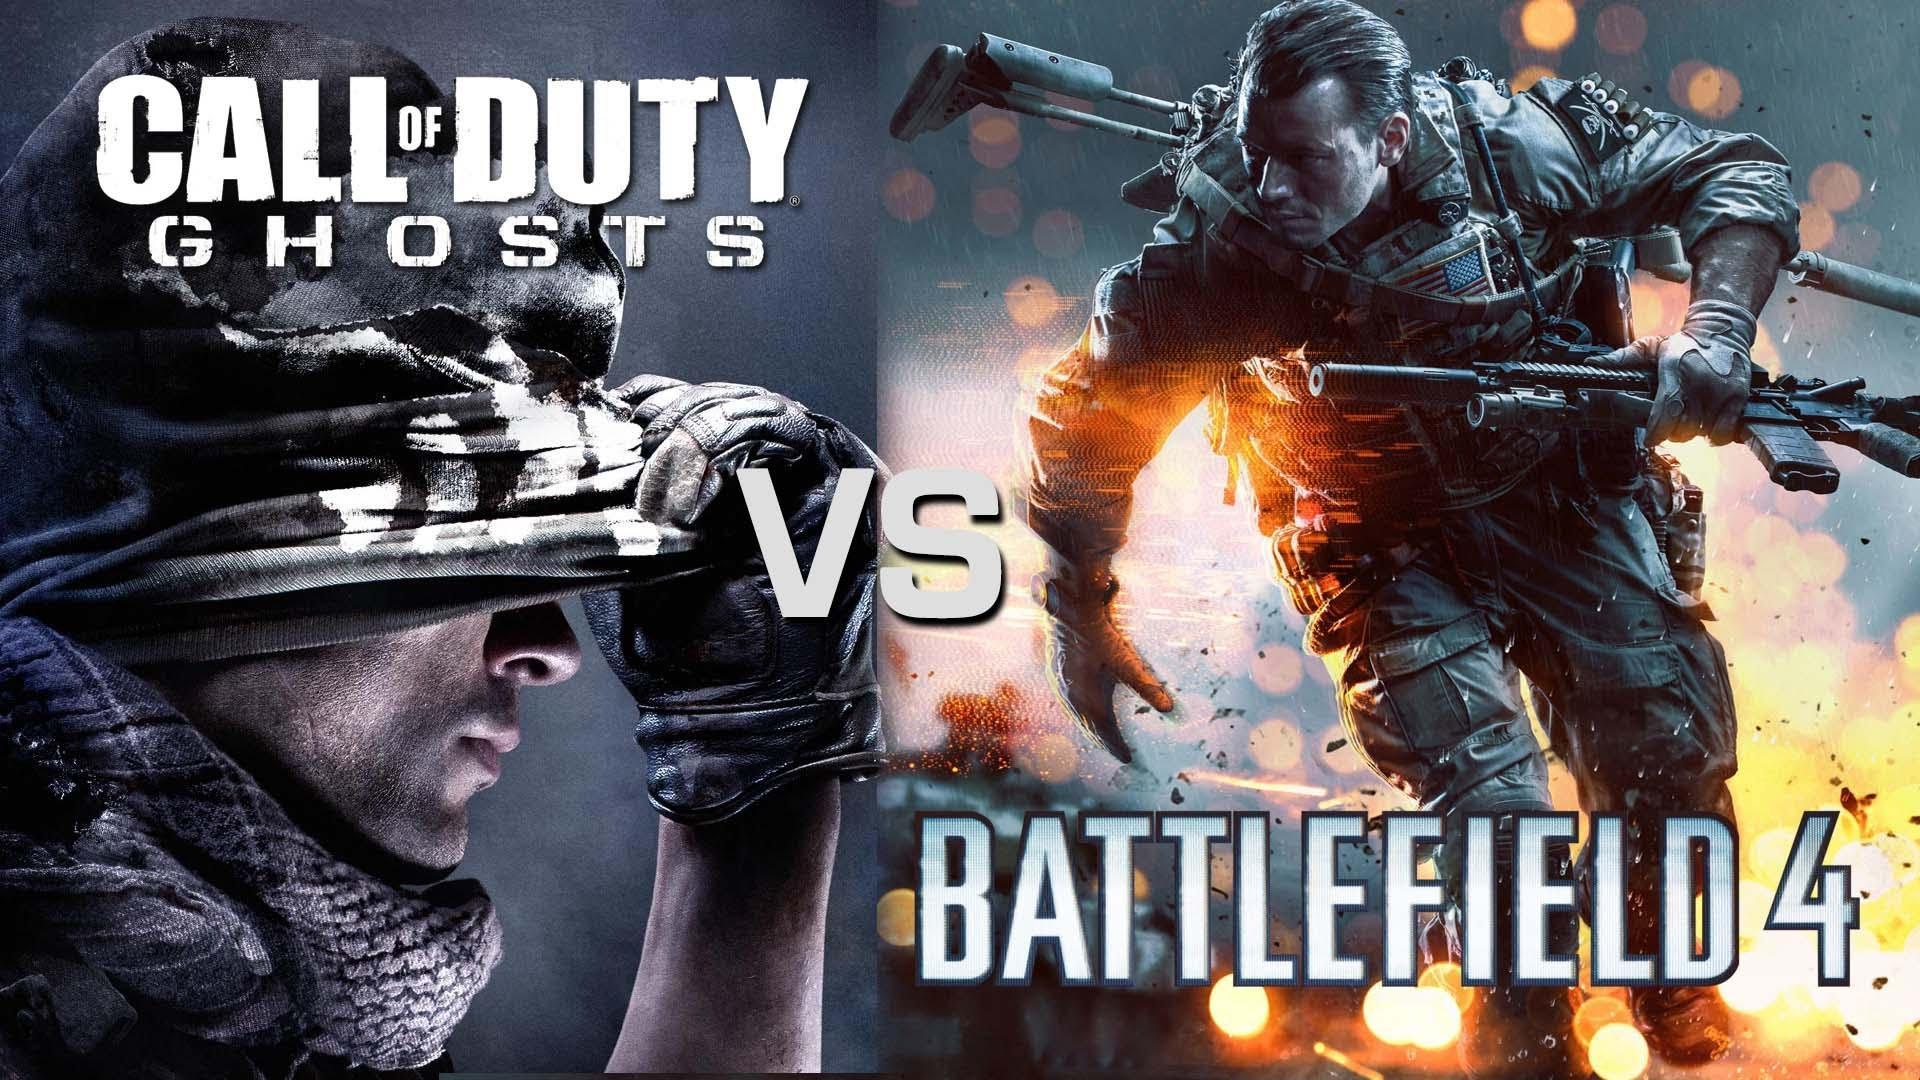 Witch is better battlefield or call of duty?   Plz comment